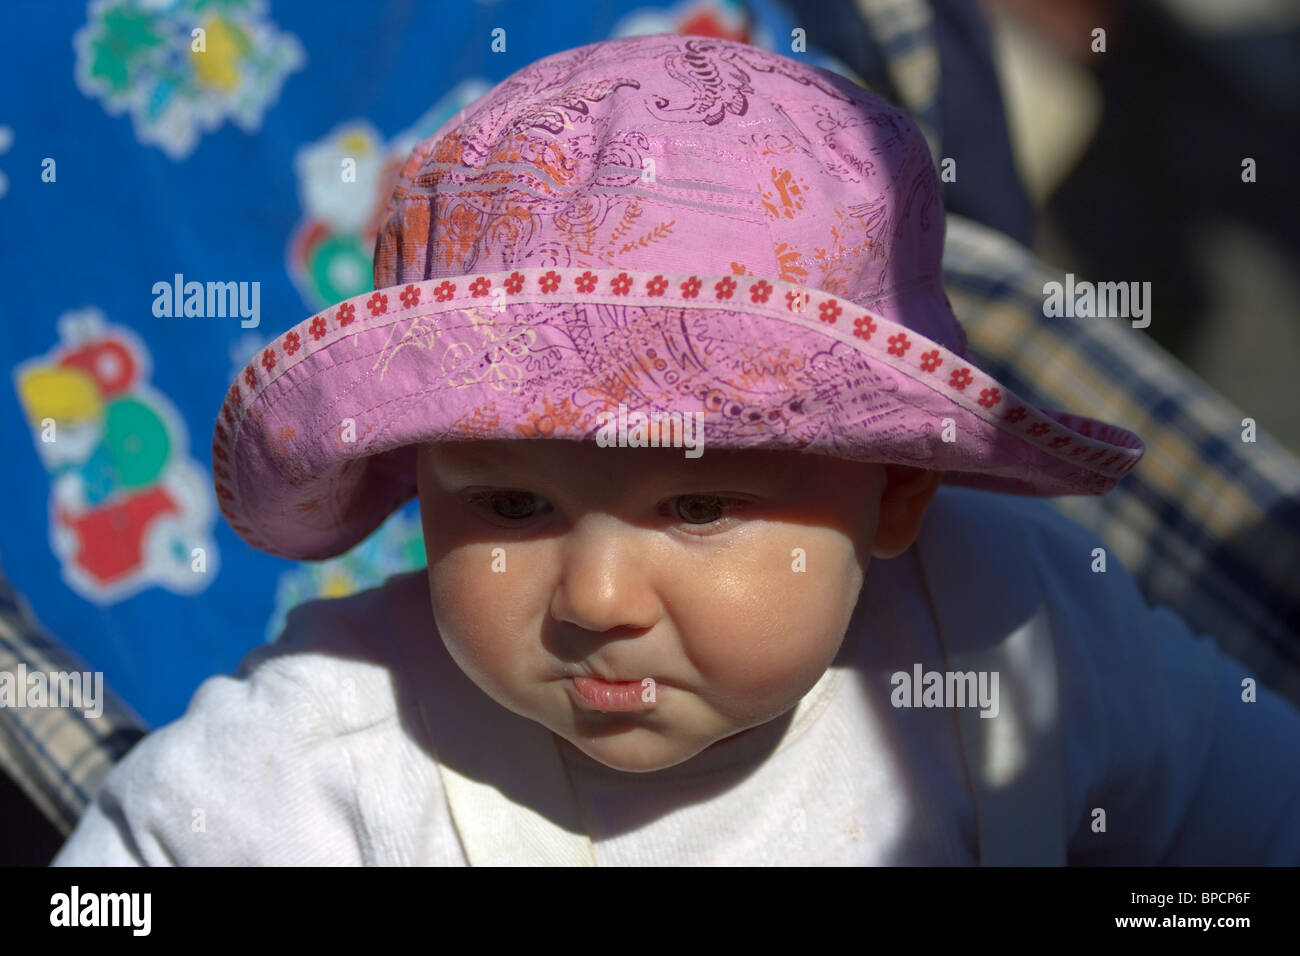 close-up of adorable baby with round cheeks sailor hat and disgruntled expression. Horizontal - Stock Image